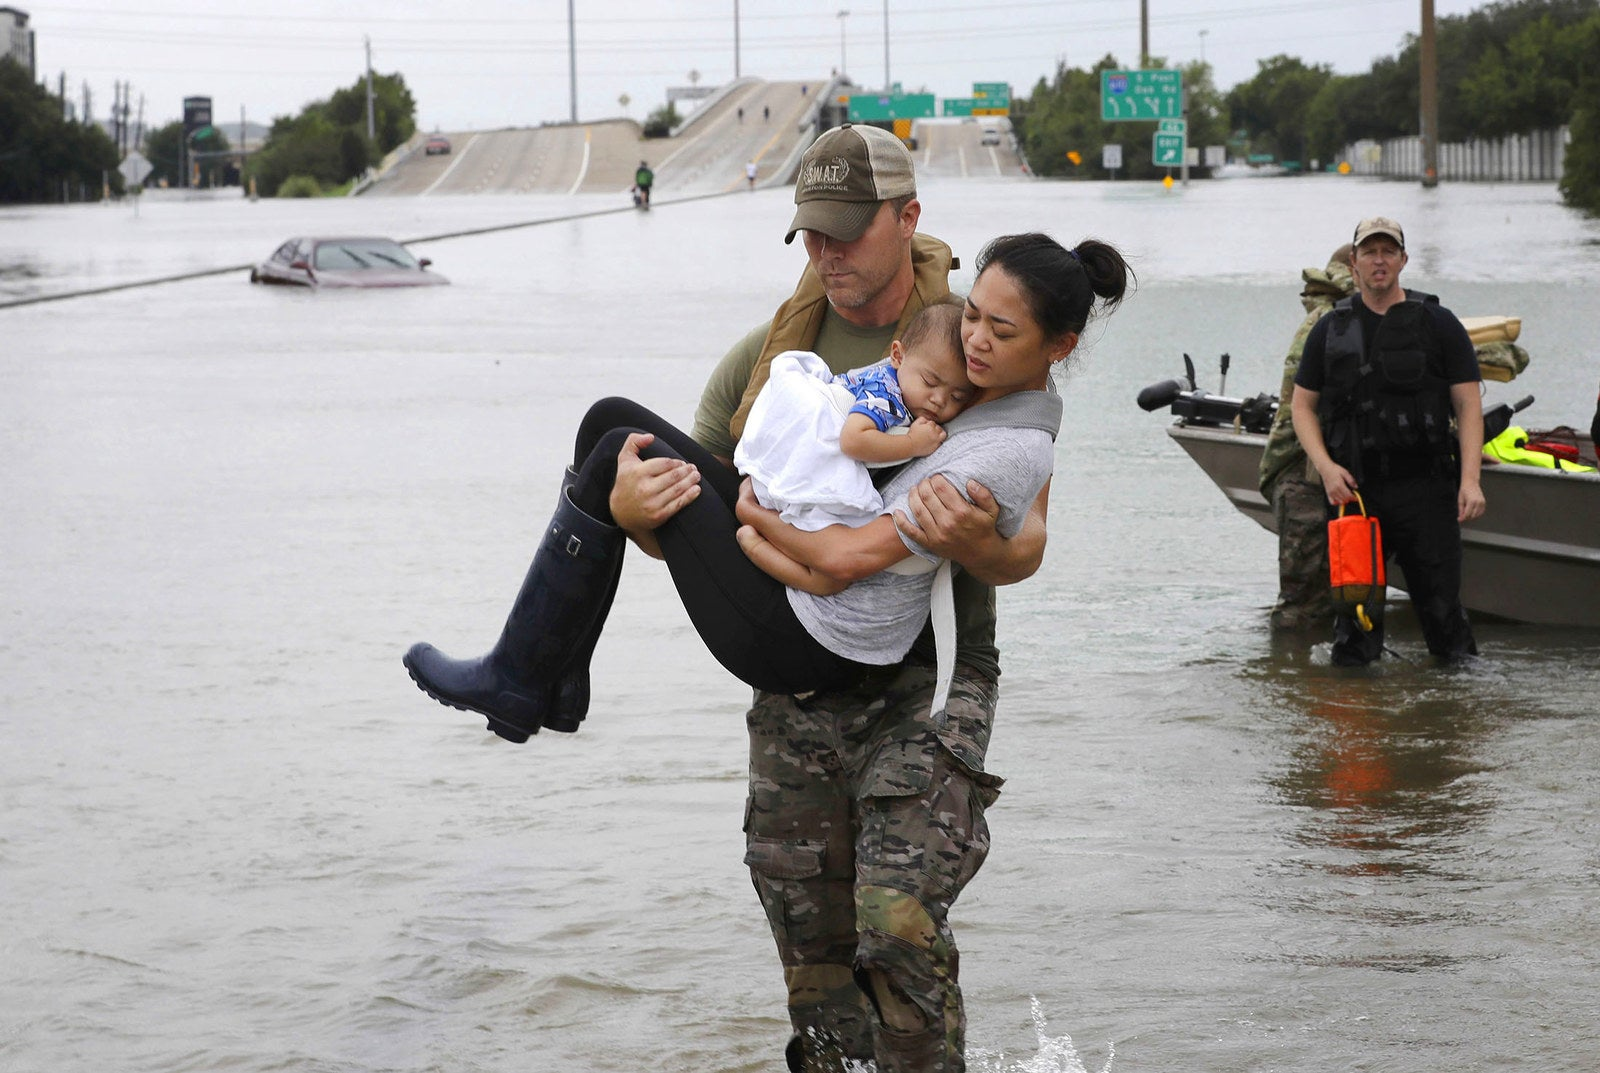 Houston Police SWAT officer Daryl Hudeck carries Catherine Pham and her 13-month-old son Aiden after rescuing them from their home surrounded by floodwaters from Tropical Storm Harvey on Aug. 27, in Houston.